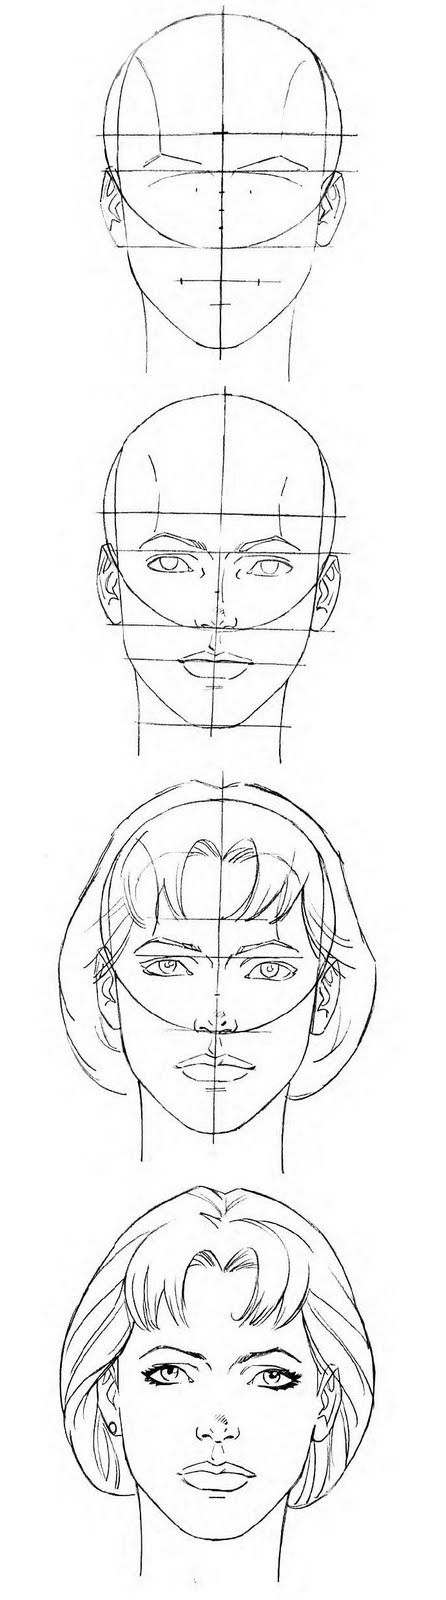 Female Head proportions template/reference // follow me on instagram: @itsjohnreid もっと見る